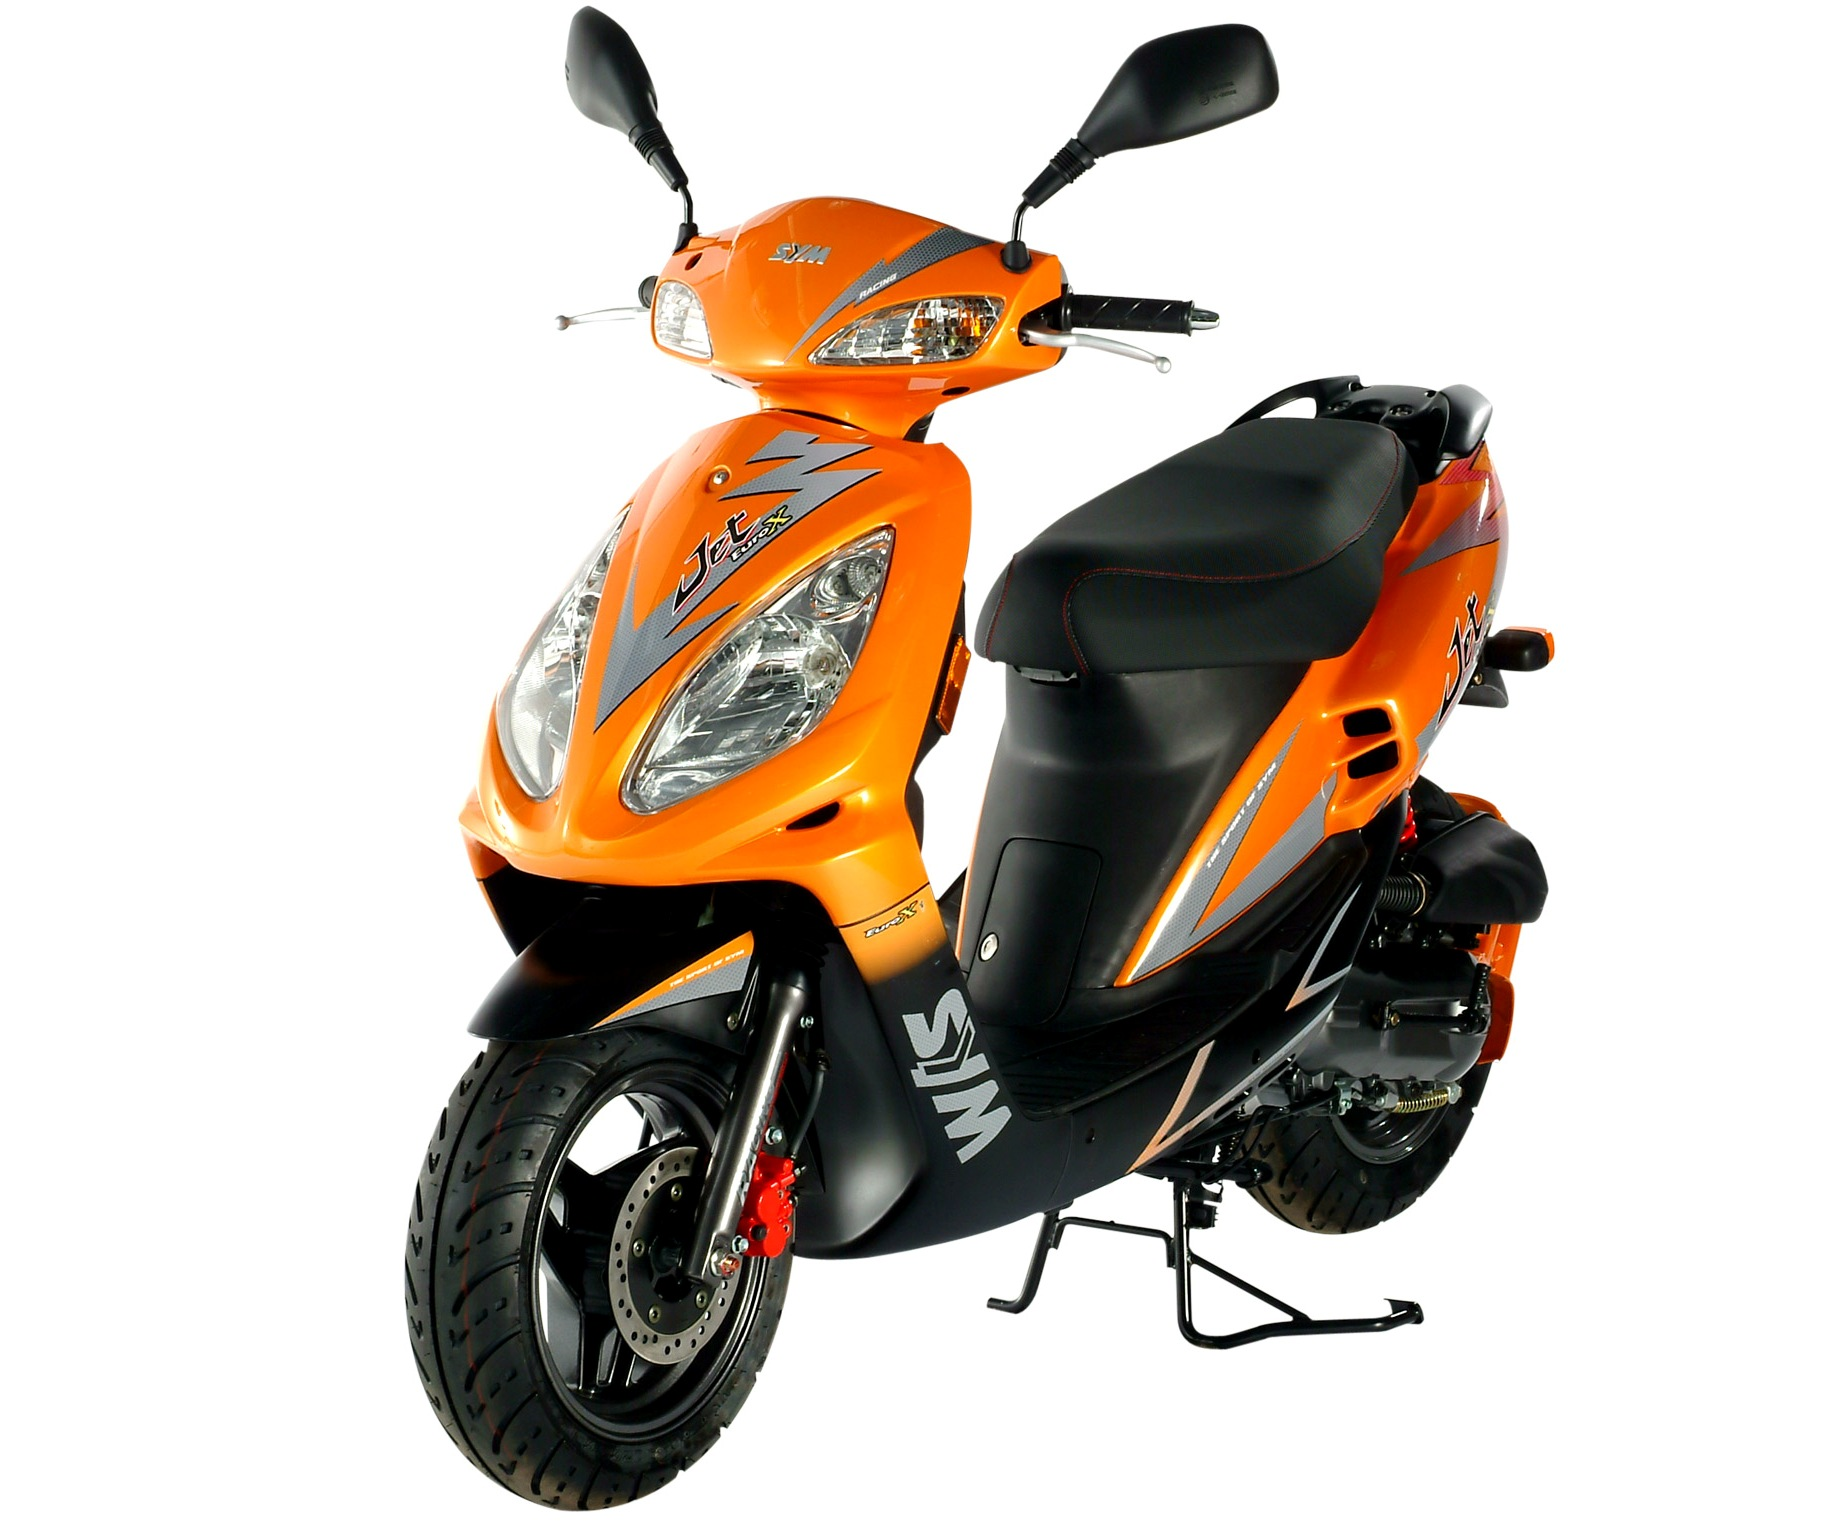 sym jet eurox 50cc scooterfun rentals your scooter rental company kalymnos greece. Black Bedroom Furniture Sets. Home Design Ideas